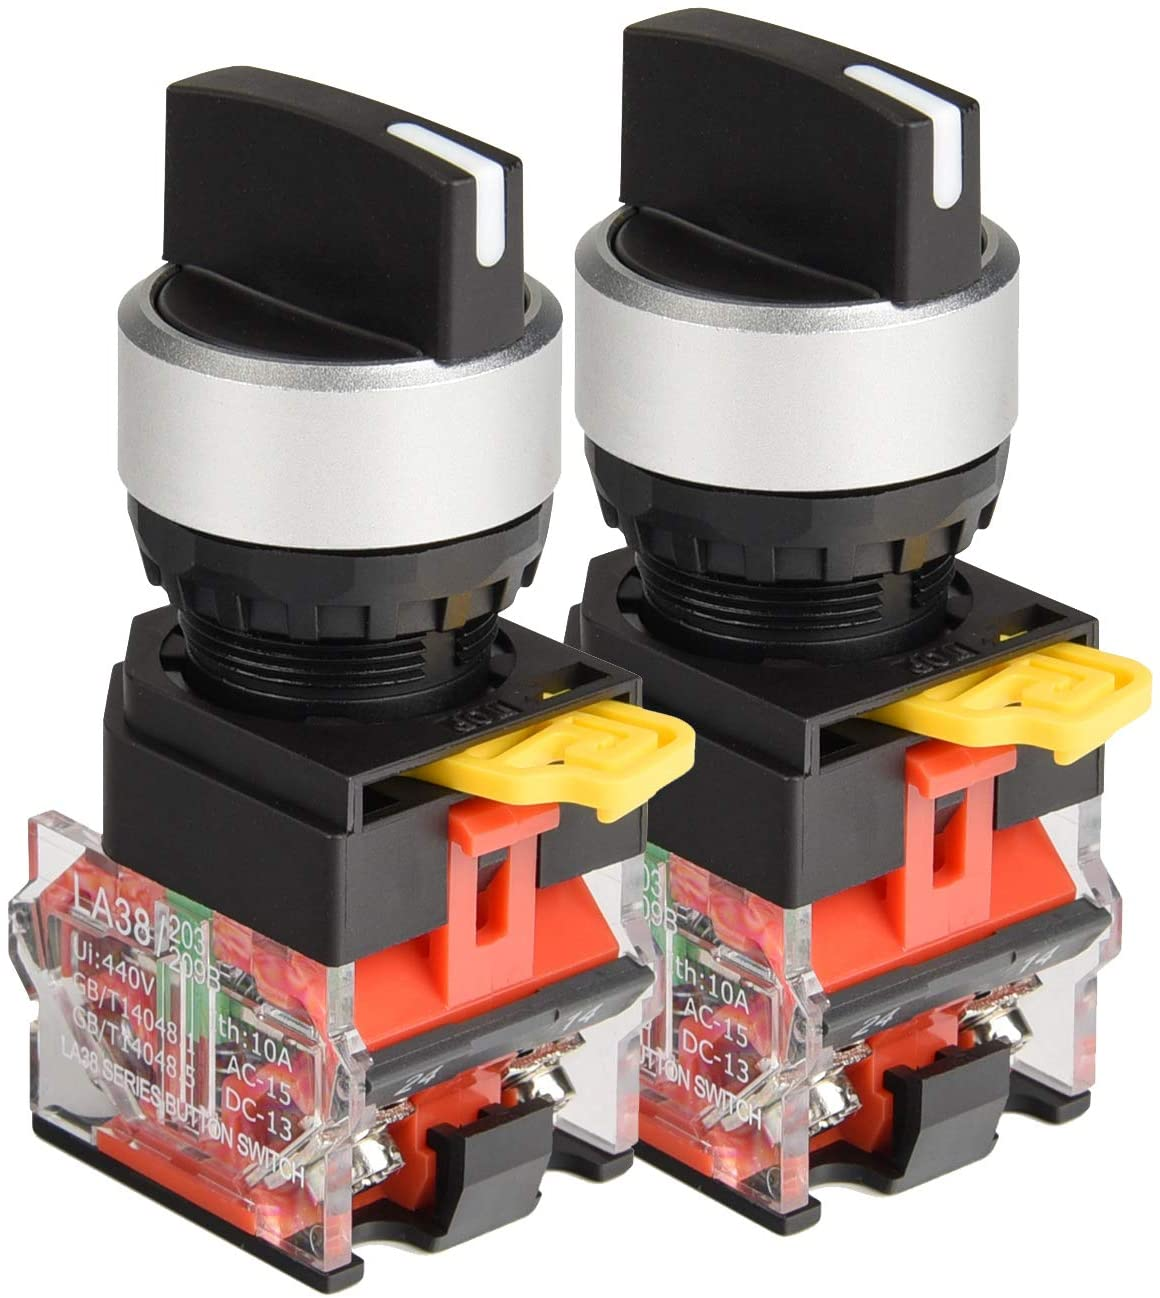 APIELE 22mm 3 Position Selector Switch 10A 440V Push Button Switch Maintained (Pack of 2)